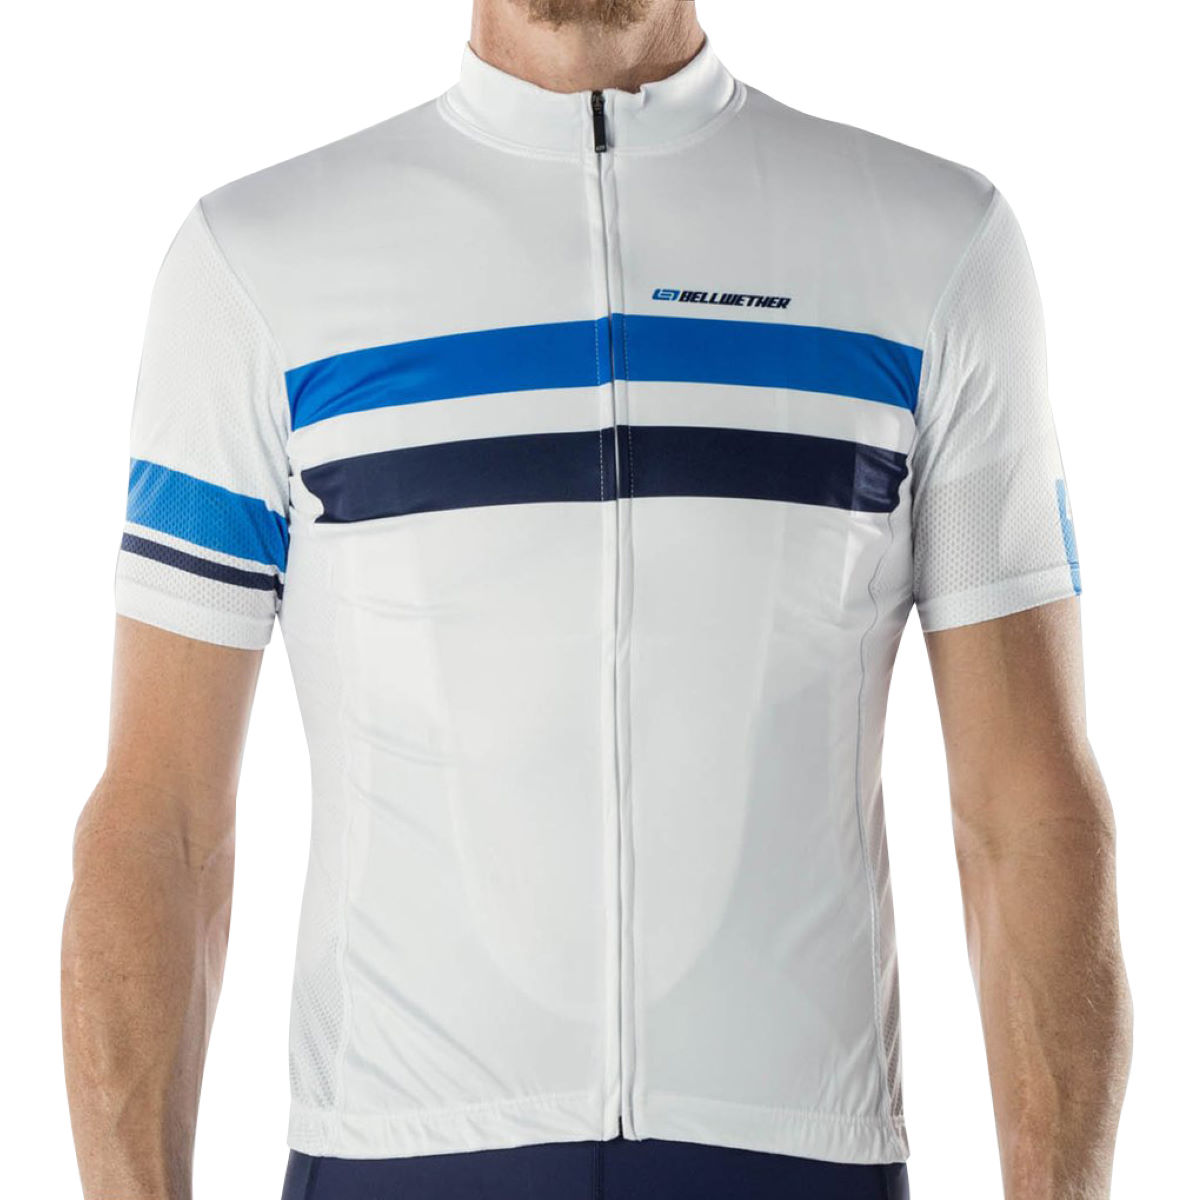 Bellwether Edge Jersey - Maillots